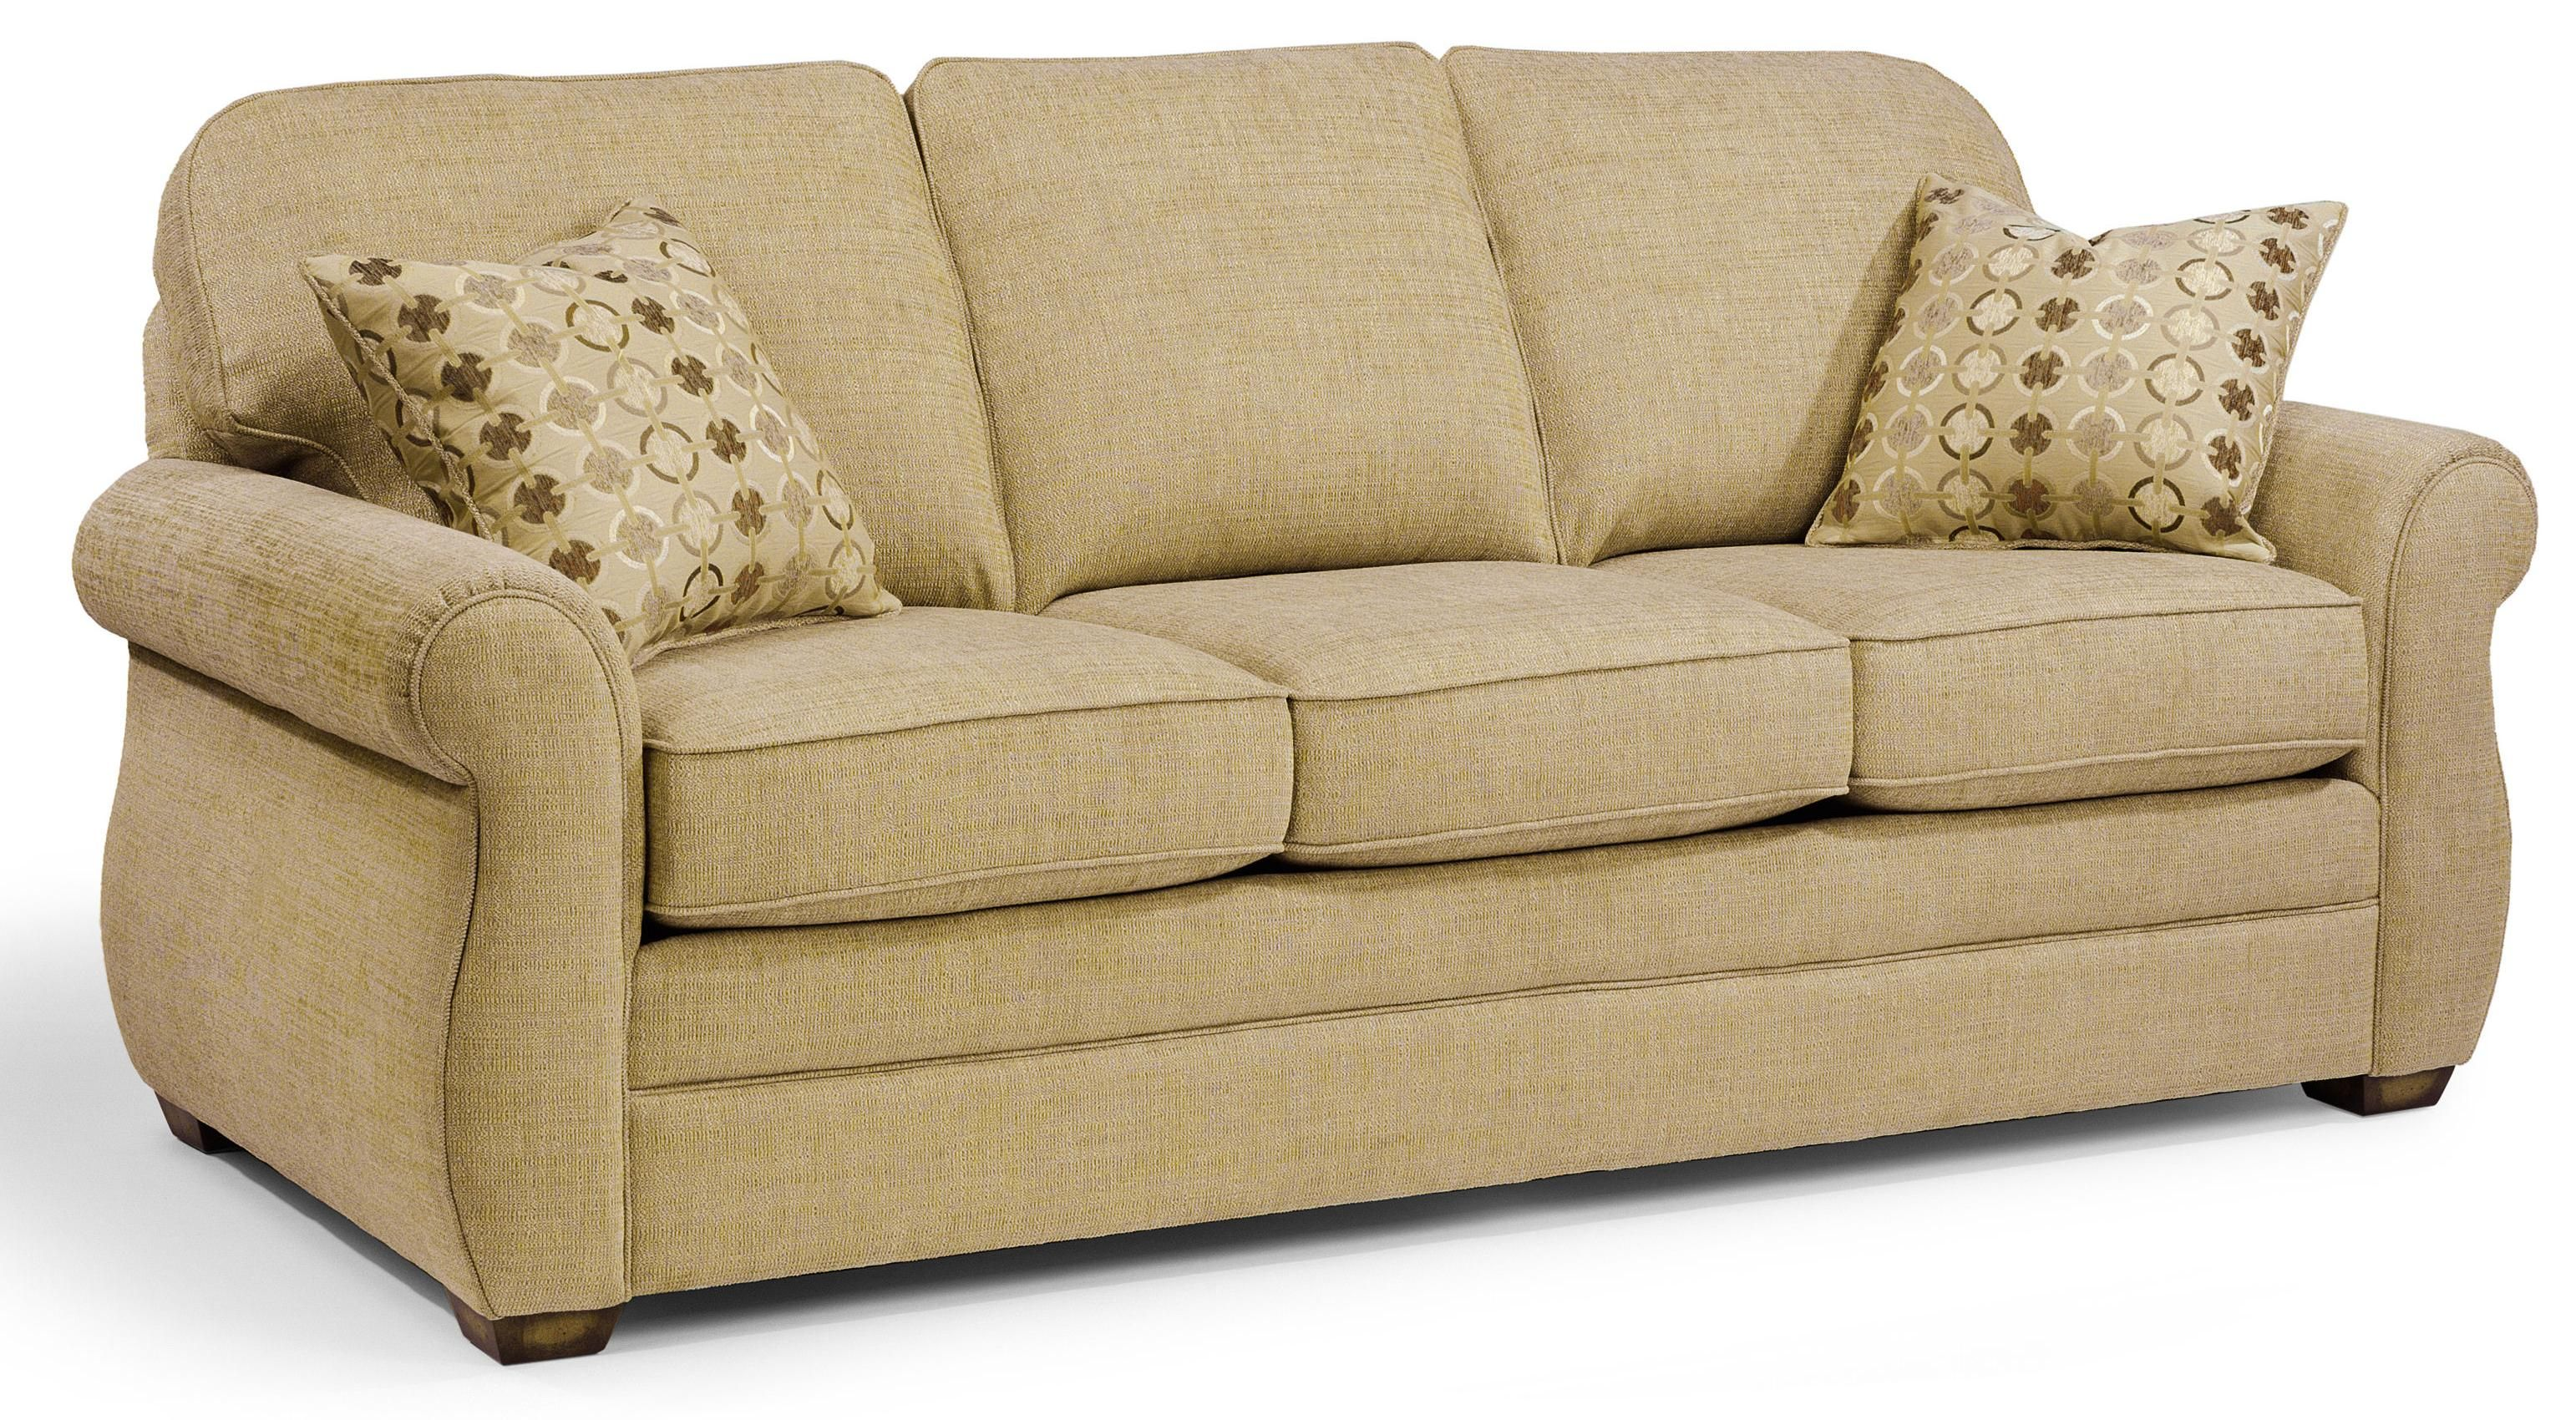 Flexsteel Winston Winston Sofa Jordan s Furniture